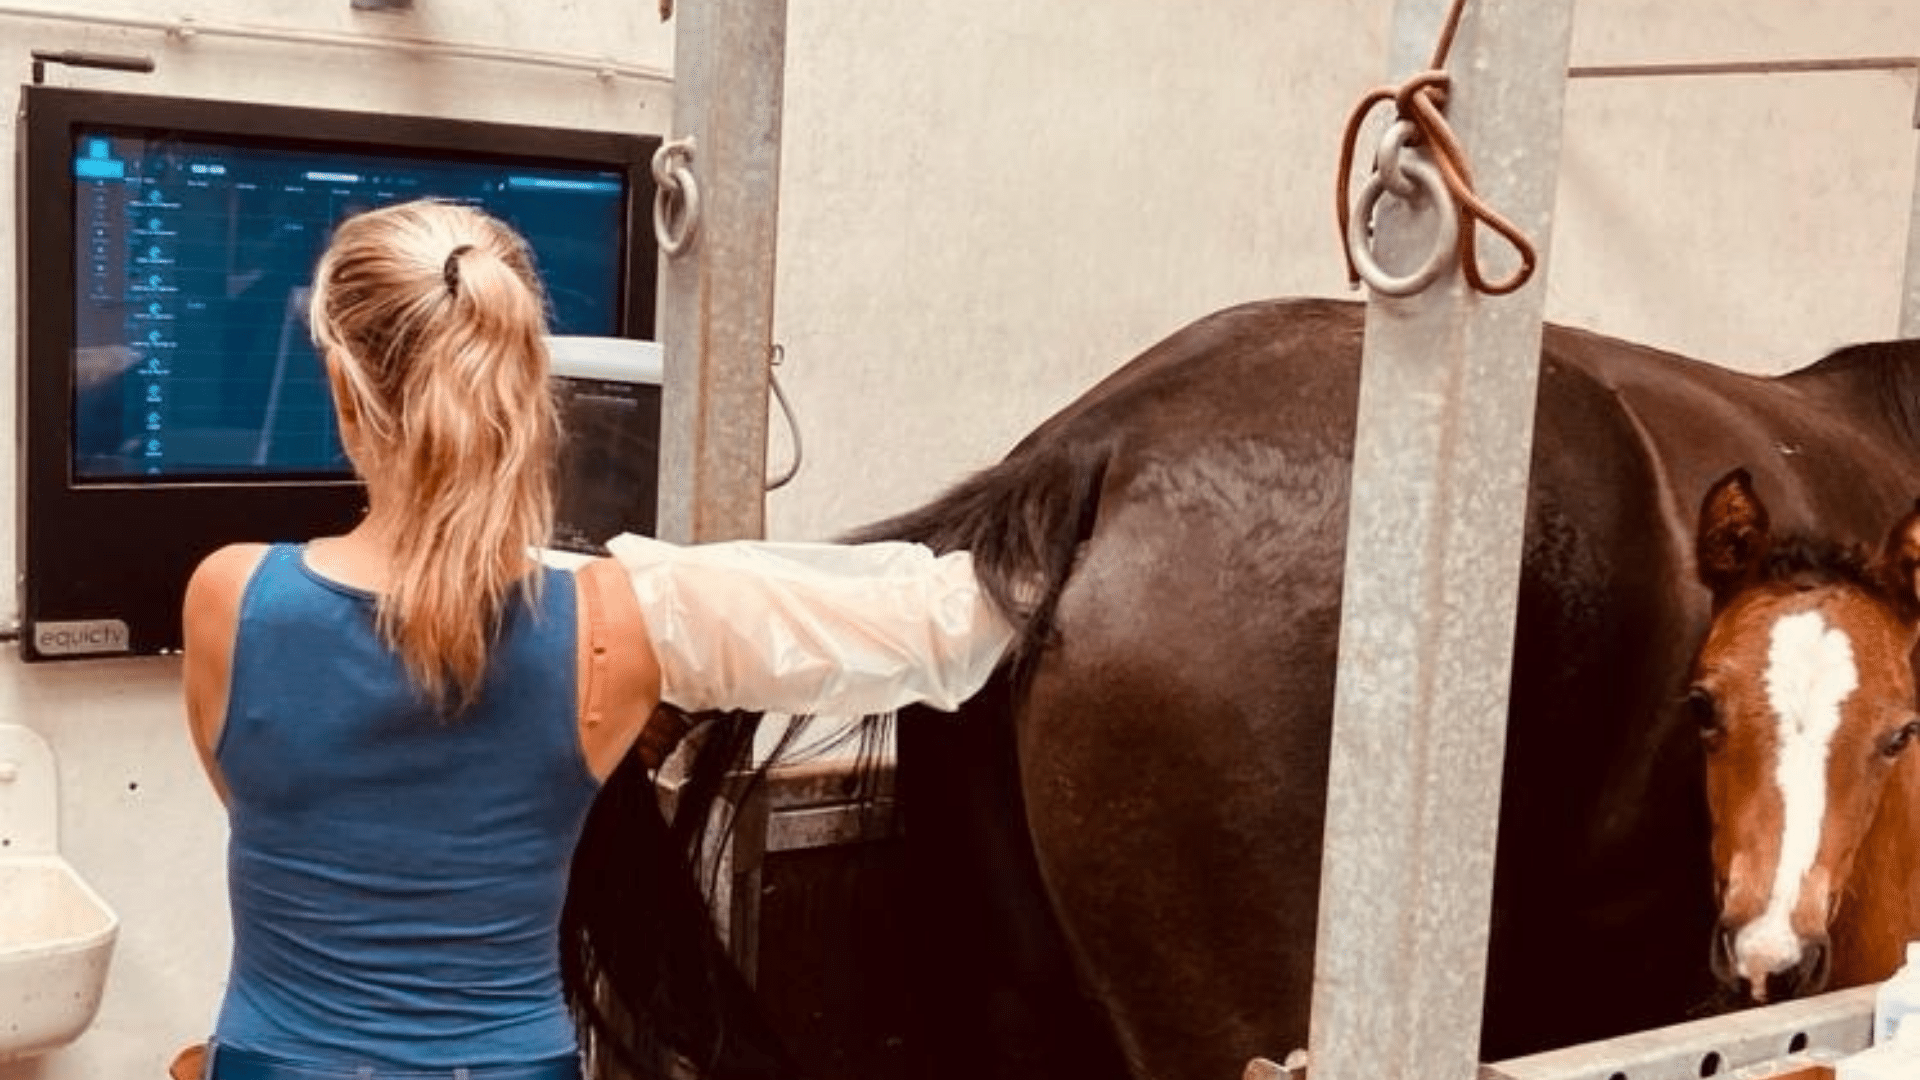 Vet scanning mare and using equicty's digital stable management tool